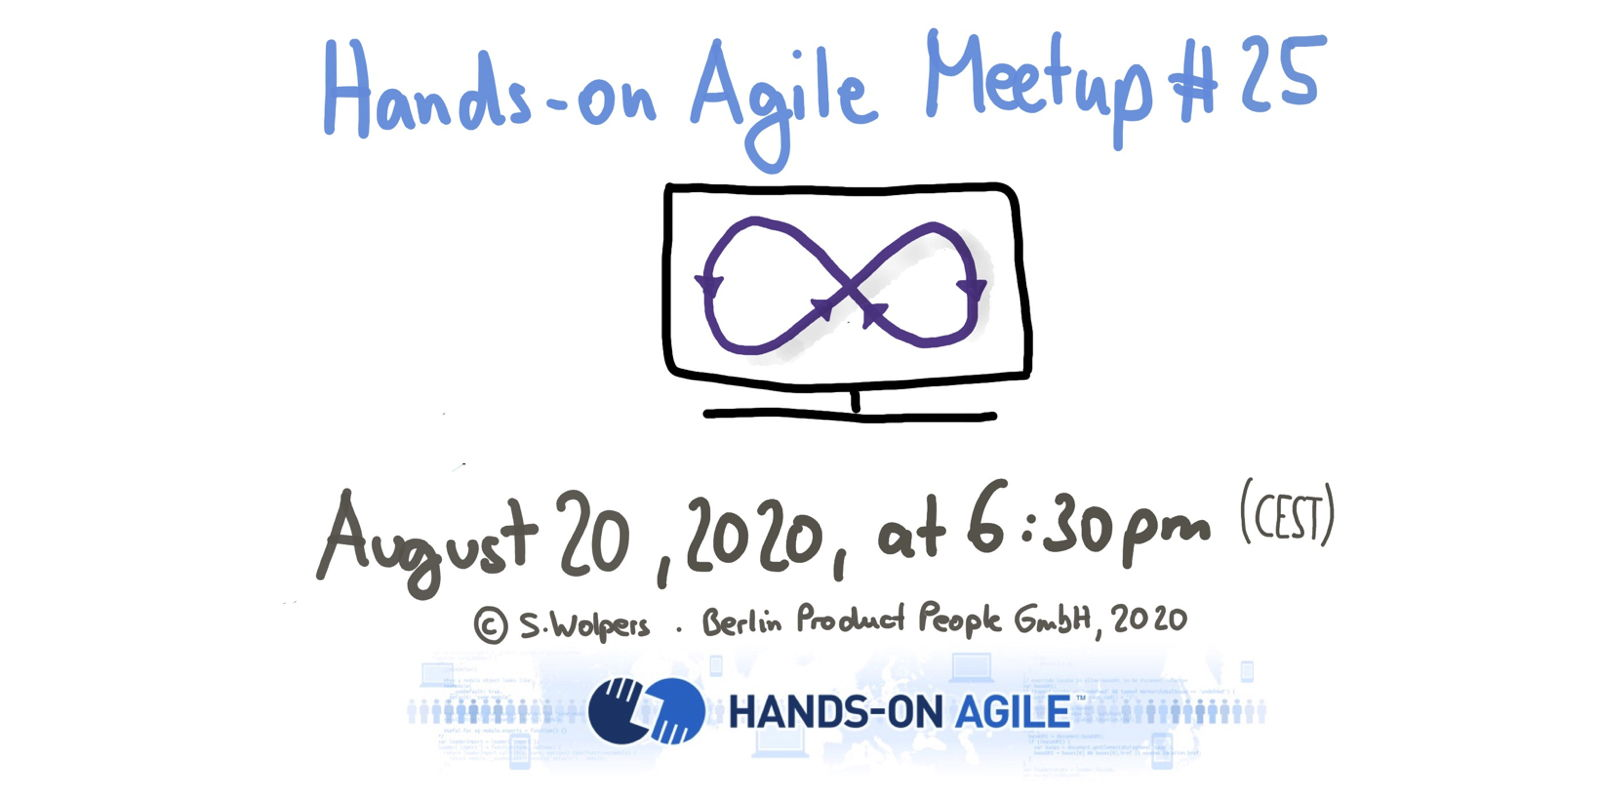 📅 🖥 Virtual Ecocycle Planning on August 20, 2020, at the #25 Hands-on Agile